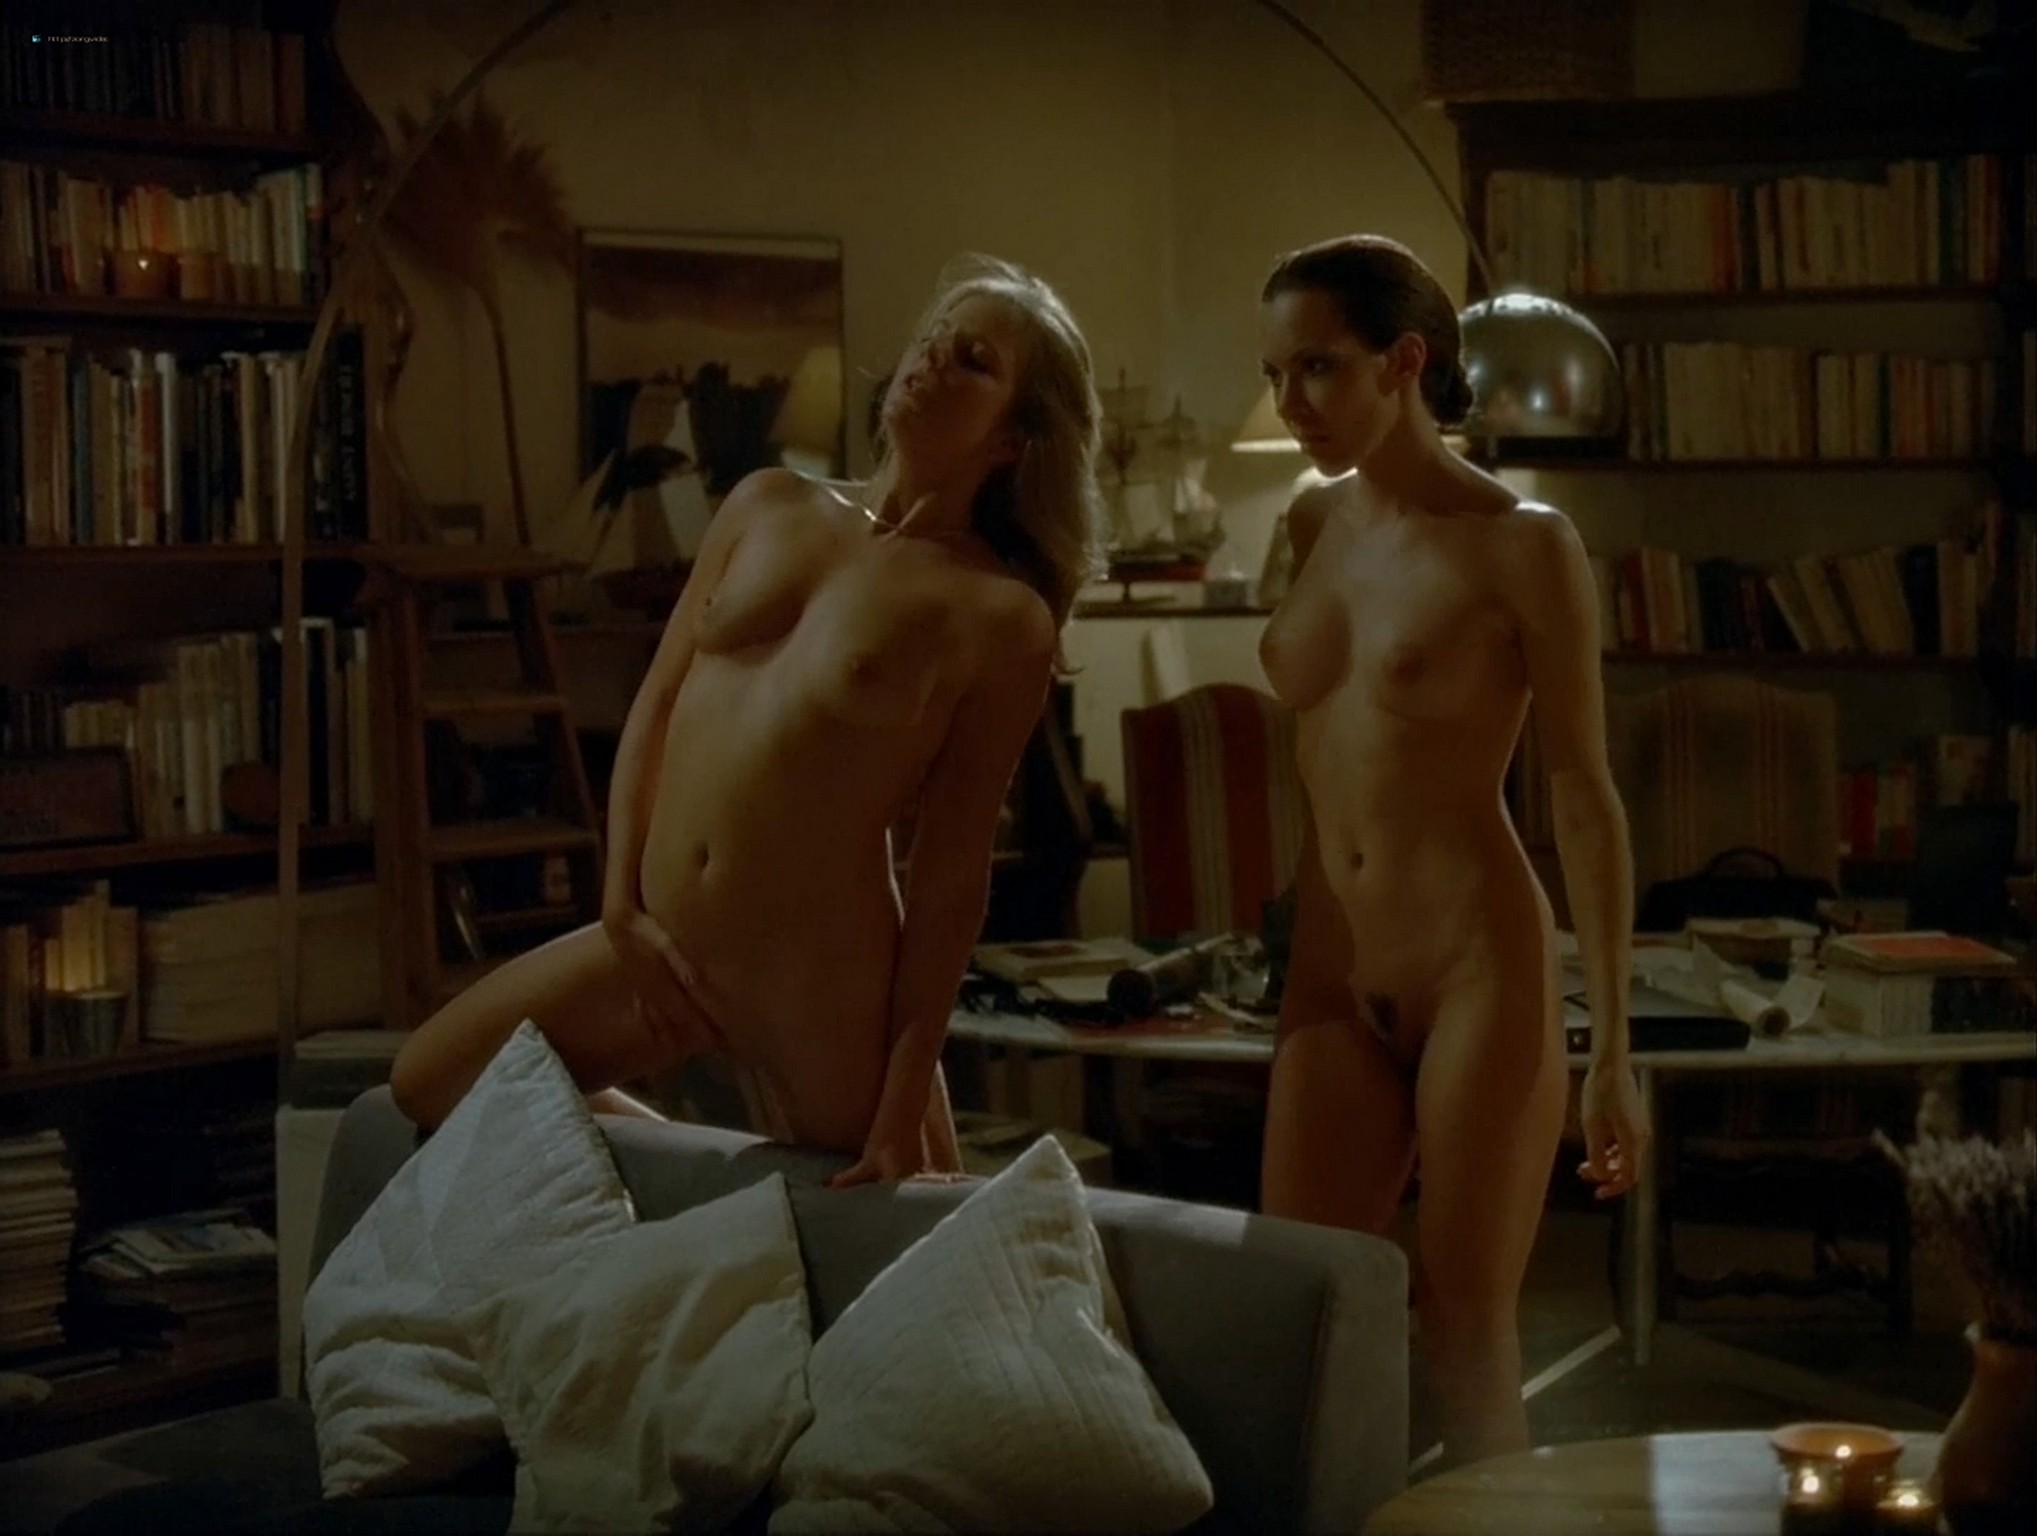 Carole Brana nude full frontal and sex threesome Nadia Chibani nude and Lise Bellynck nude too A L aventure FR 2008 1080p Web 7